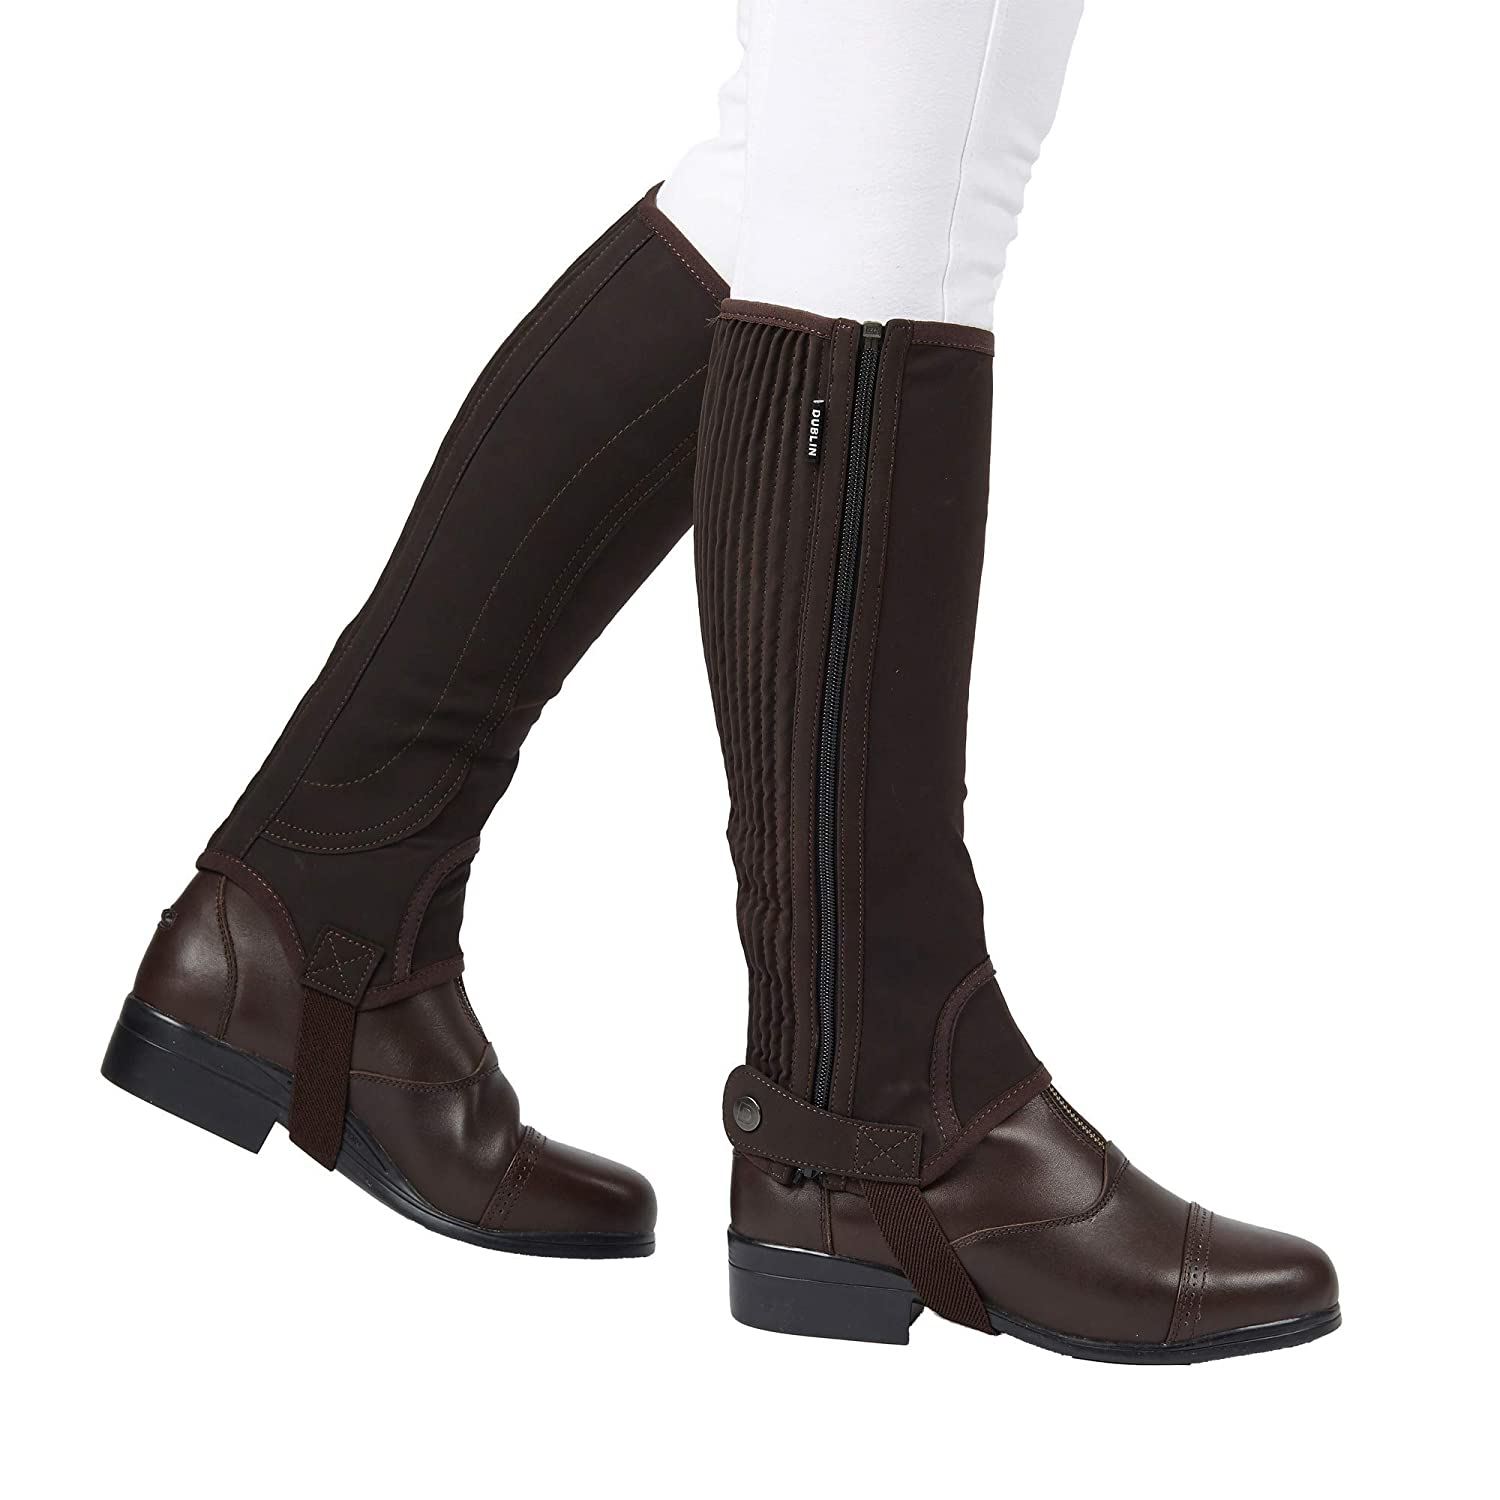 Dublin Childs Easy Care Half Chaps I Weatherbeeta USA Inc.